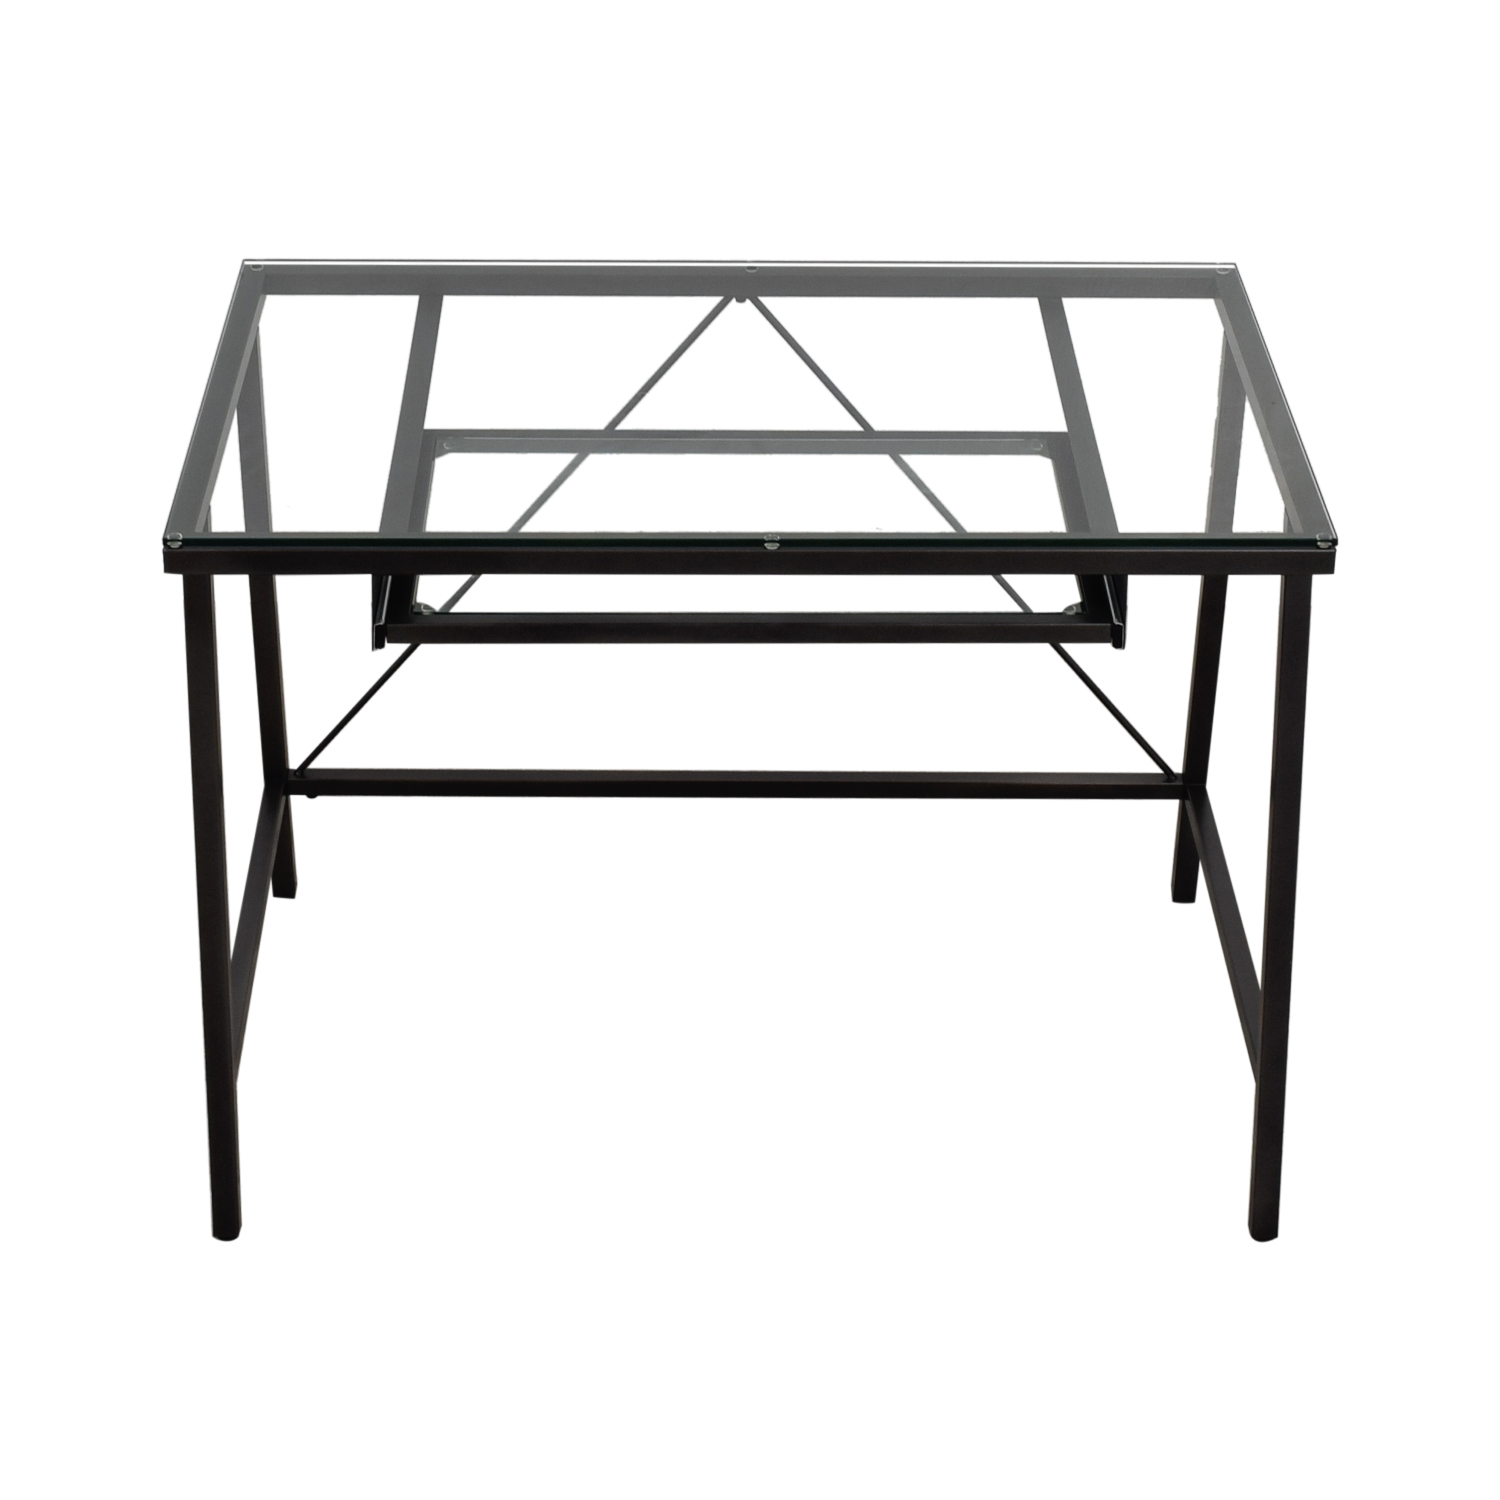 buy CB2 CB2 Dwight Steel and Glass Desk online